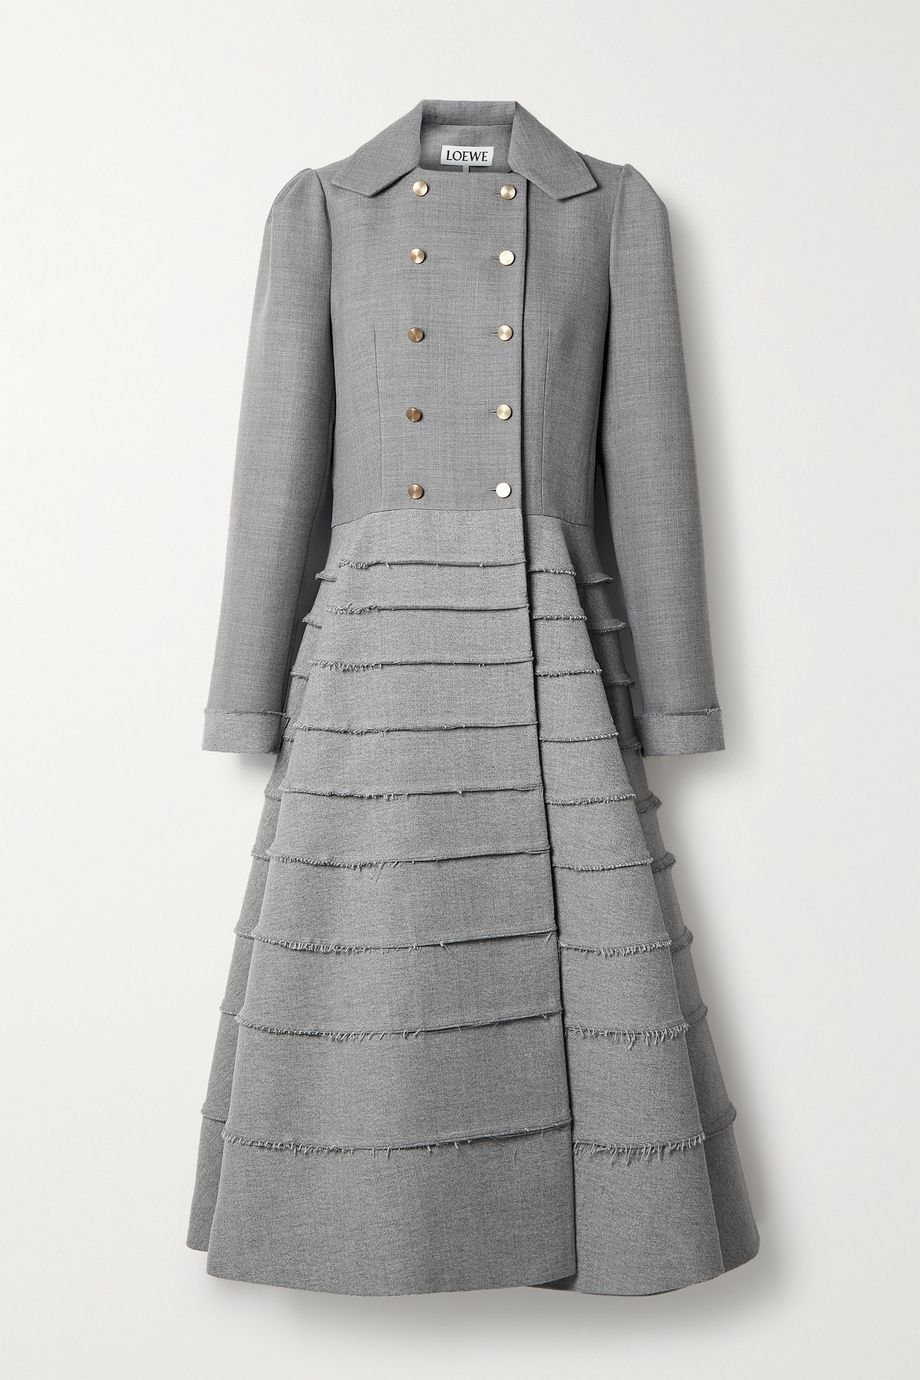 Loewe Double-breasted frayed wool coat